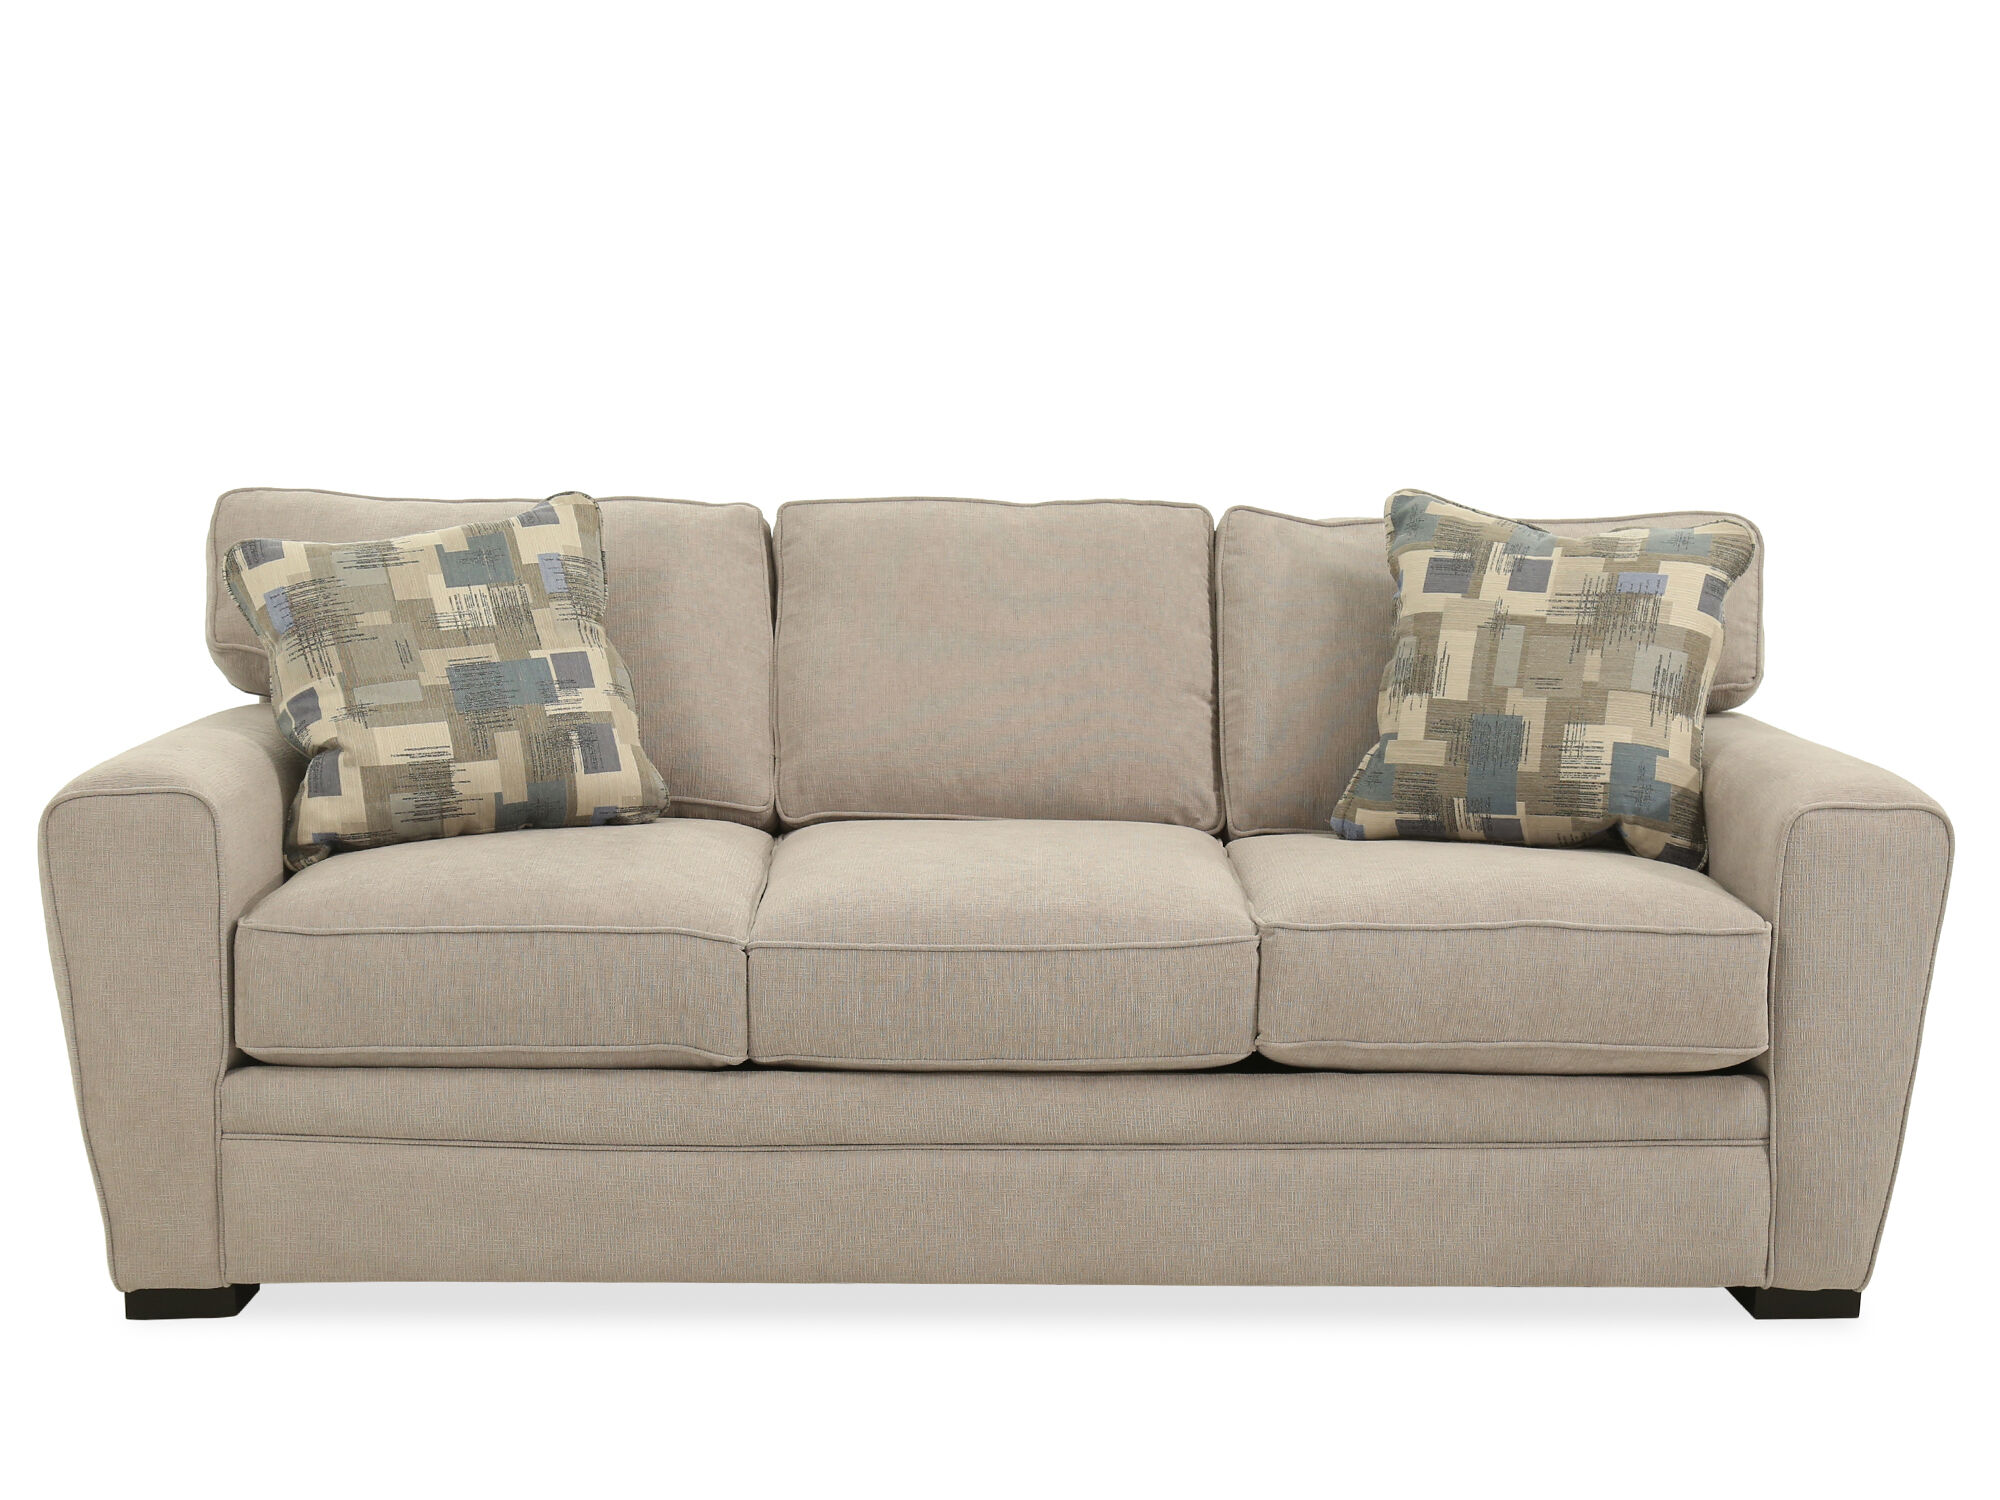 straight arm casual queen sleeper sofa in cream mathis brothers rh mathisbrothers com Queen Sleeper Sofa Sectional Sleeper Sofa